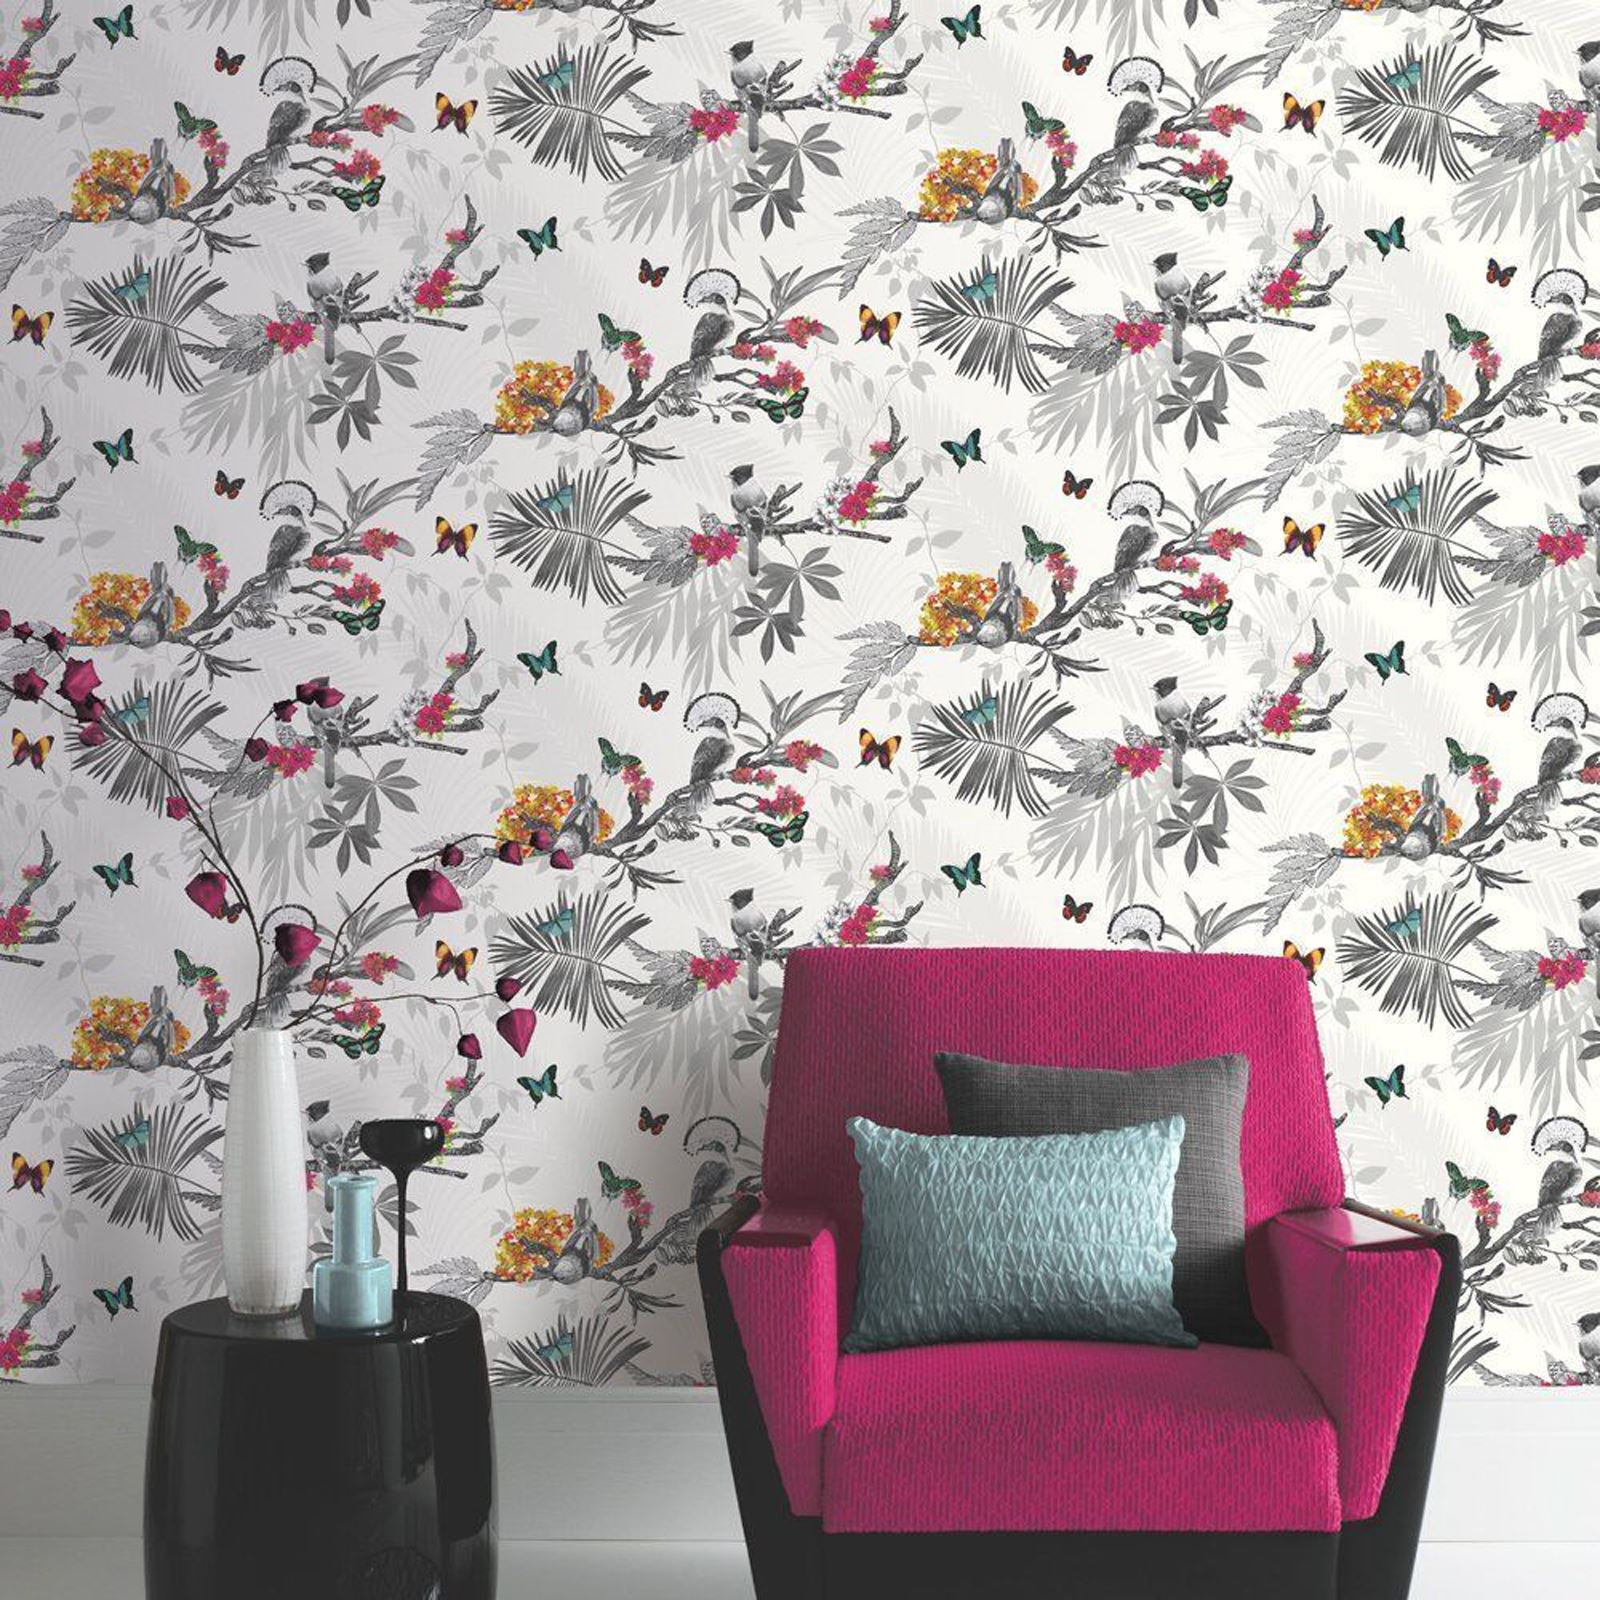 BUTTERFLY WALLPAPER GIRLS BEDROOM DECOR PINK WHITE TEAL